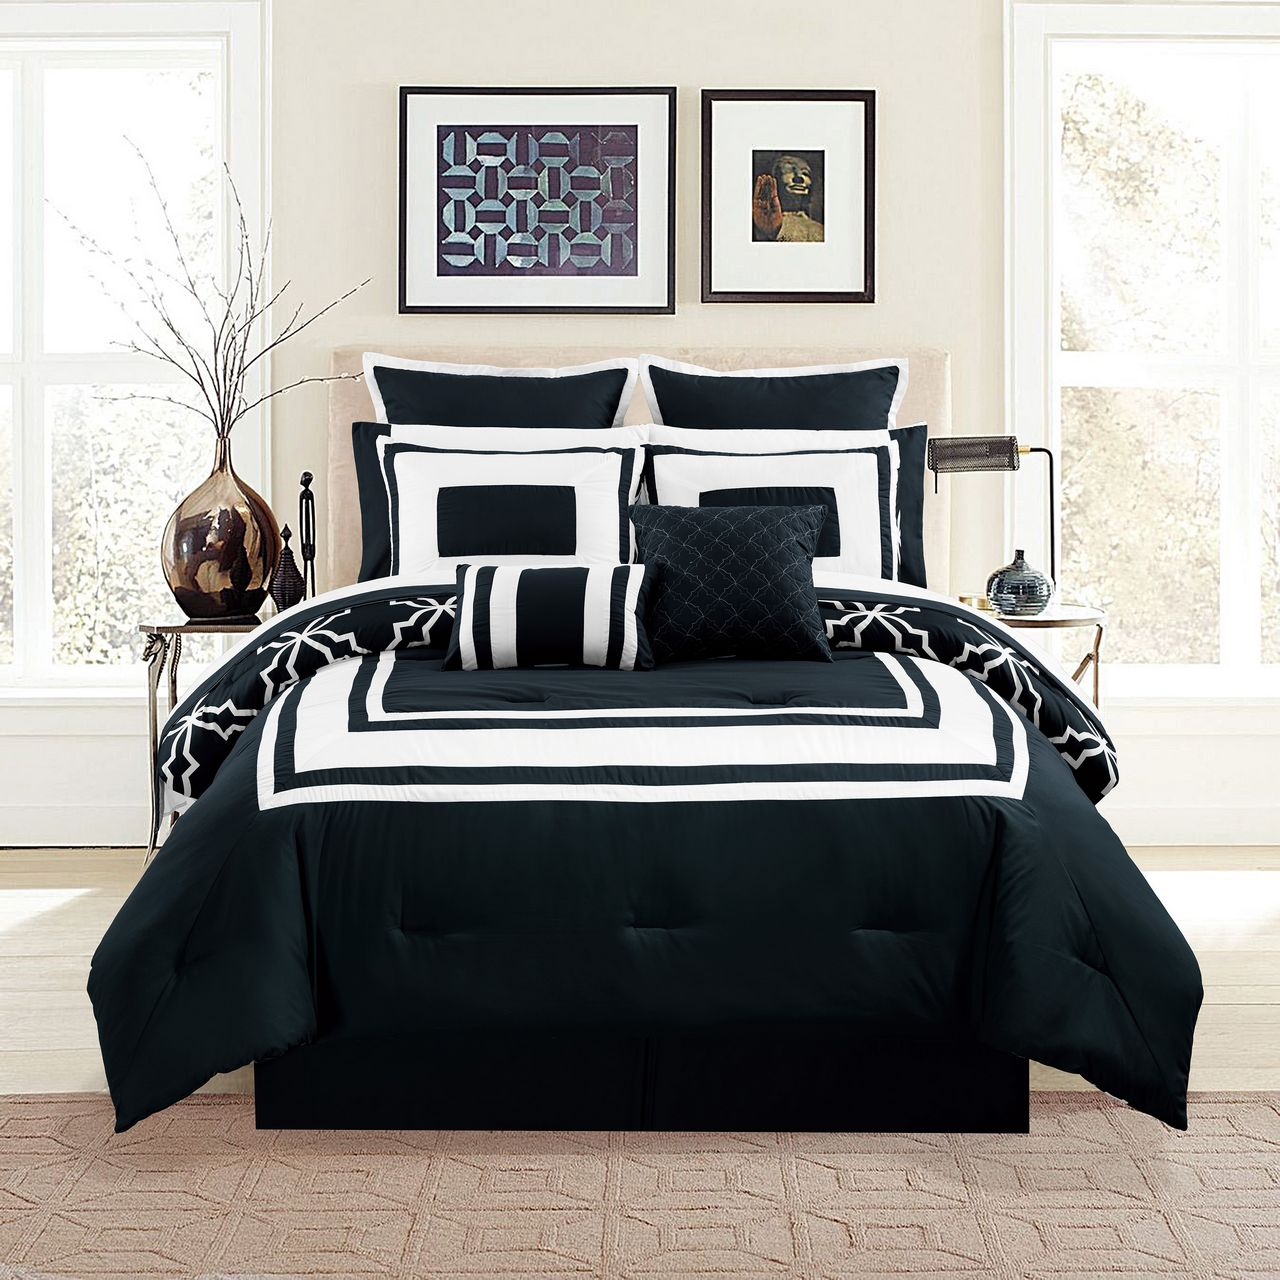 12 Piece Bernard Burgundy Comforter Set with Sheets